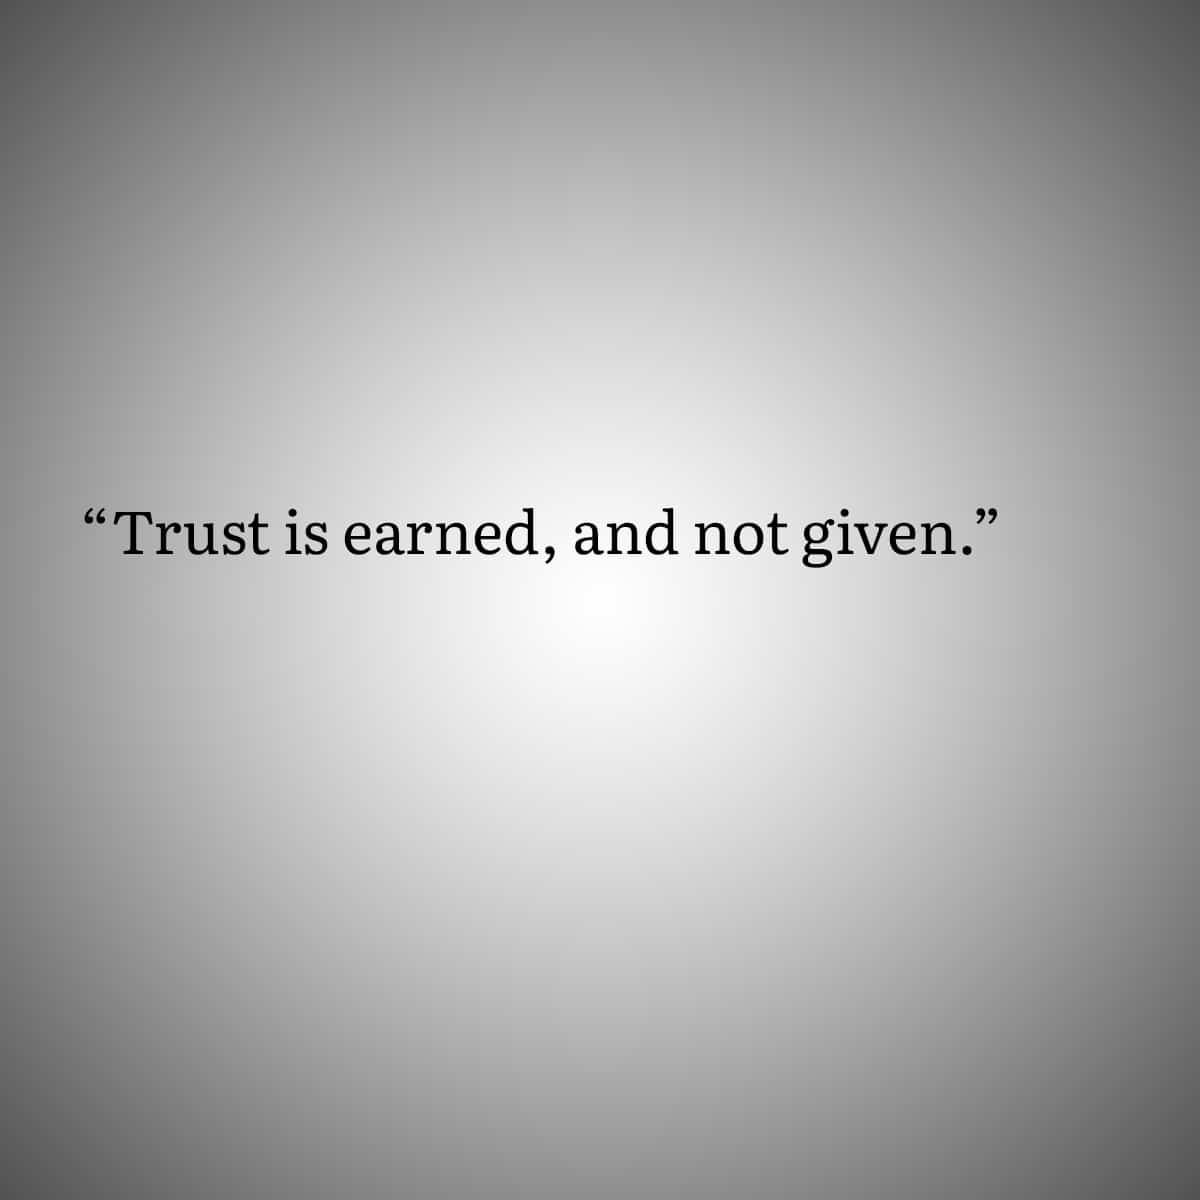 Trust is earned, and not given.